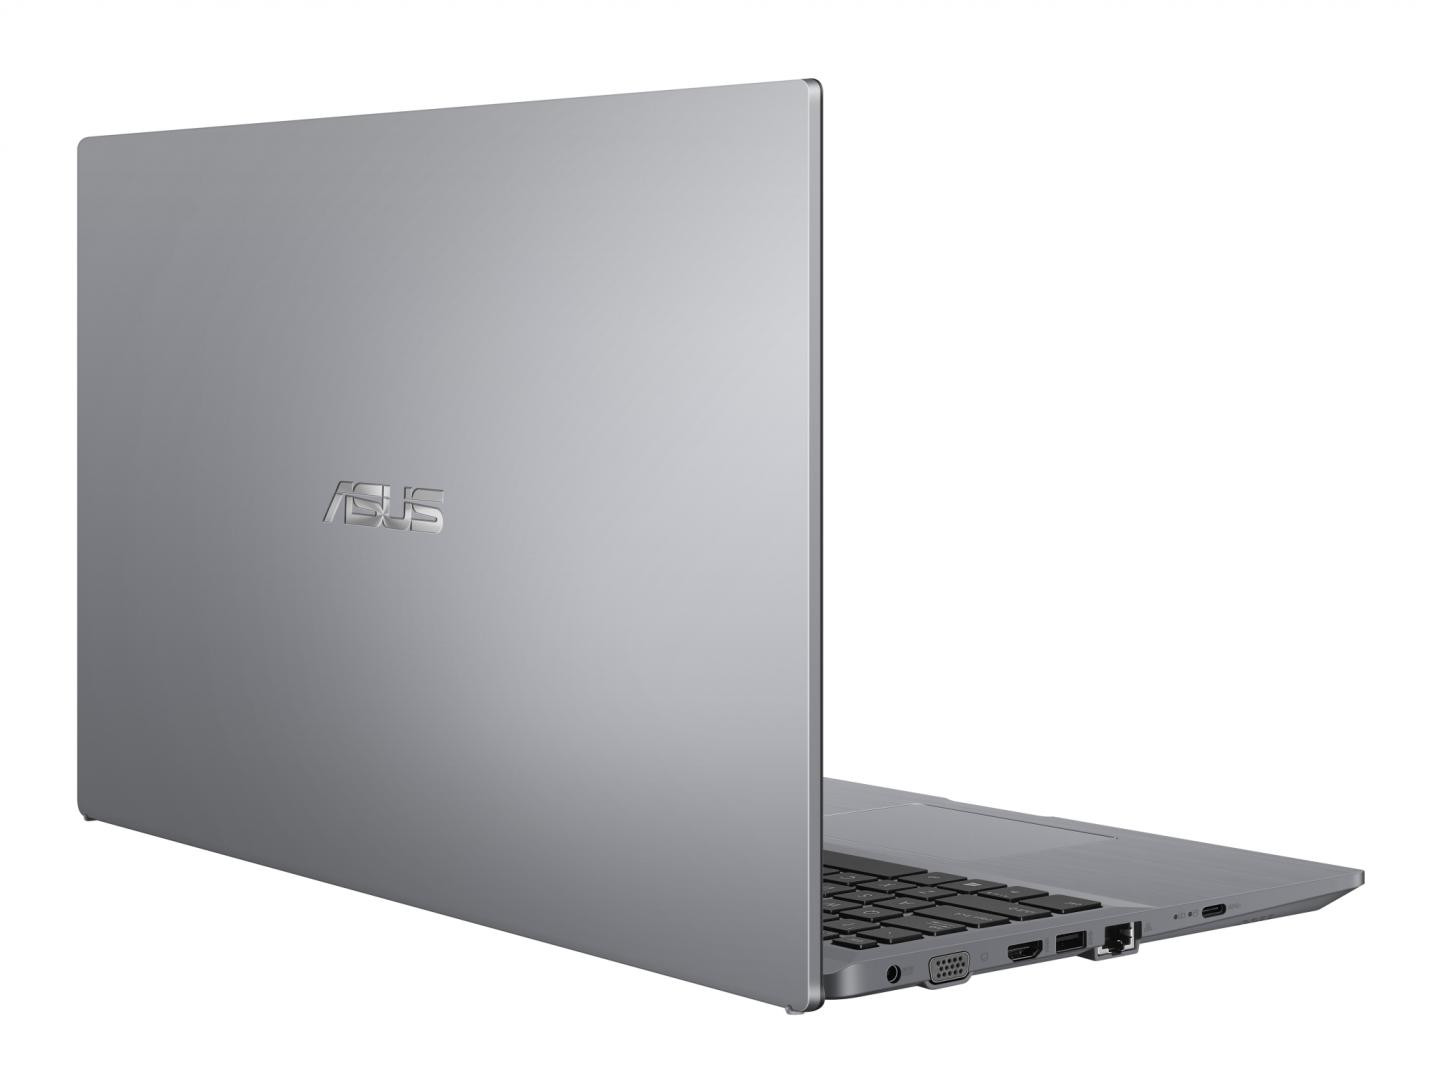 Laptop Business ASUS ExpertBook P3540FA-BR1336, 15.6-inch, HD (1366 x 768) 16:9, LCD, Anti-glare display, Intel® Core™ i5-8265U Processor 1.6 GHz (6M Cache, up to 3.9 GHz, 4 cores), Intel® UHD Graphics 620, 8GB DDR4 on board, 512GB M.2 NVMe™ PCIe® 3.0 SSD, Wi-Fi 5(802.11ac) +Bluetooth 4.2 (Dual - imaginea 1